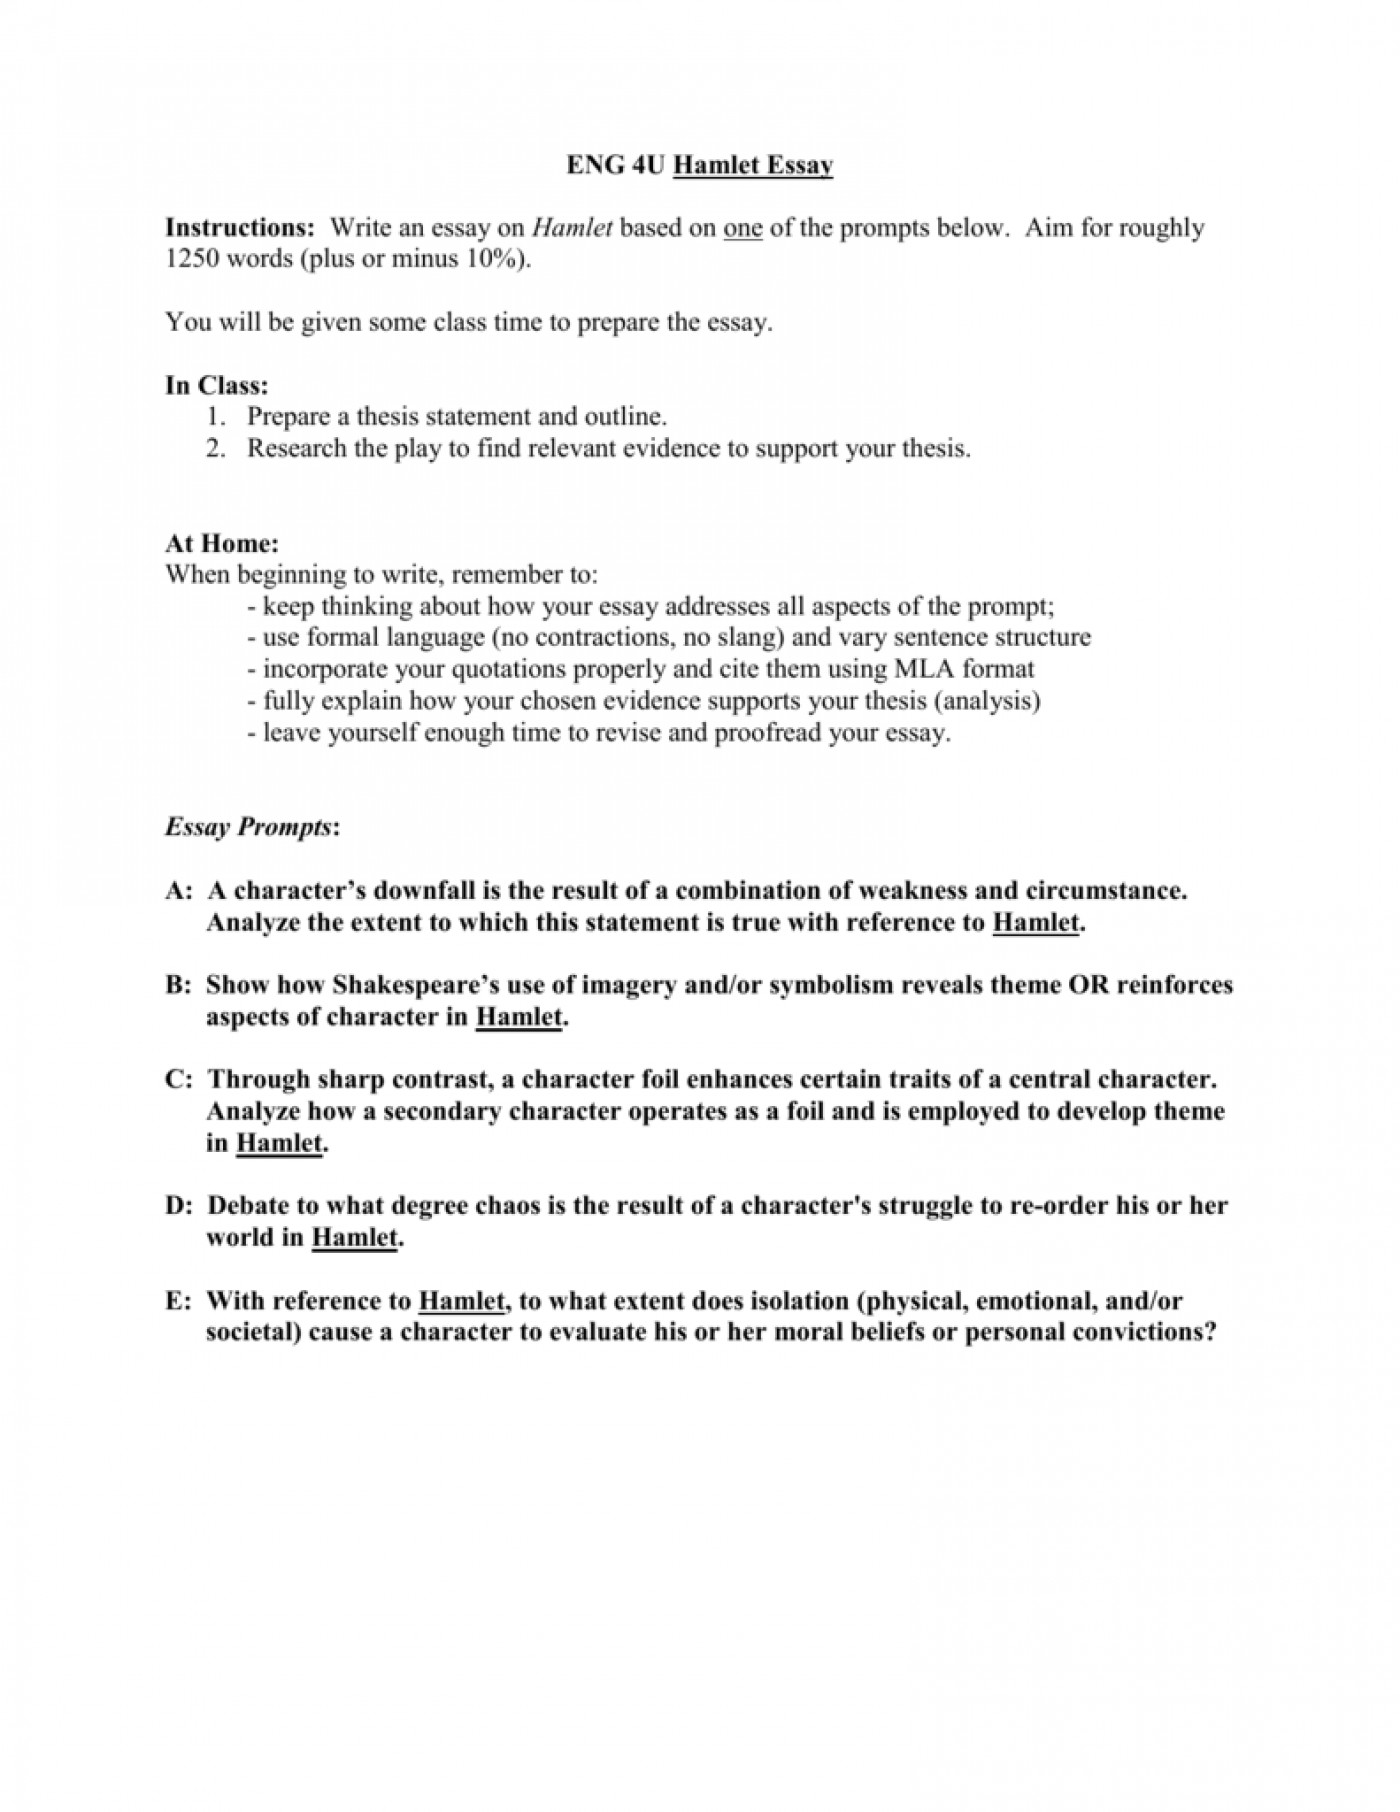 005 Essay Example 008038423 1 University Of Chicago Striking Prompts Illinois Prompt Loyola 1400